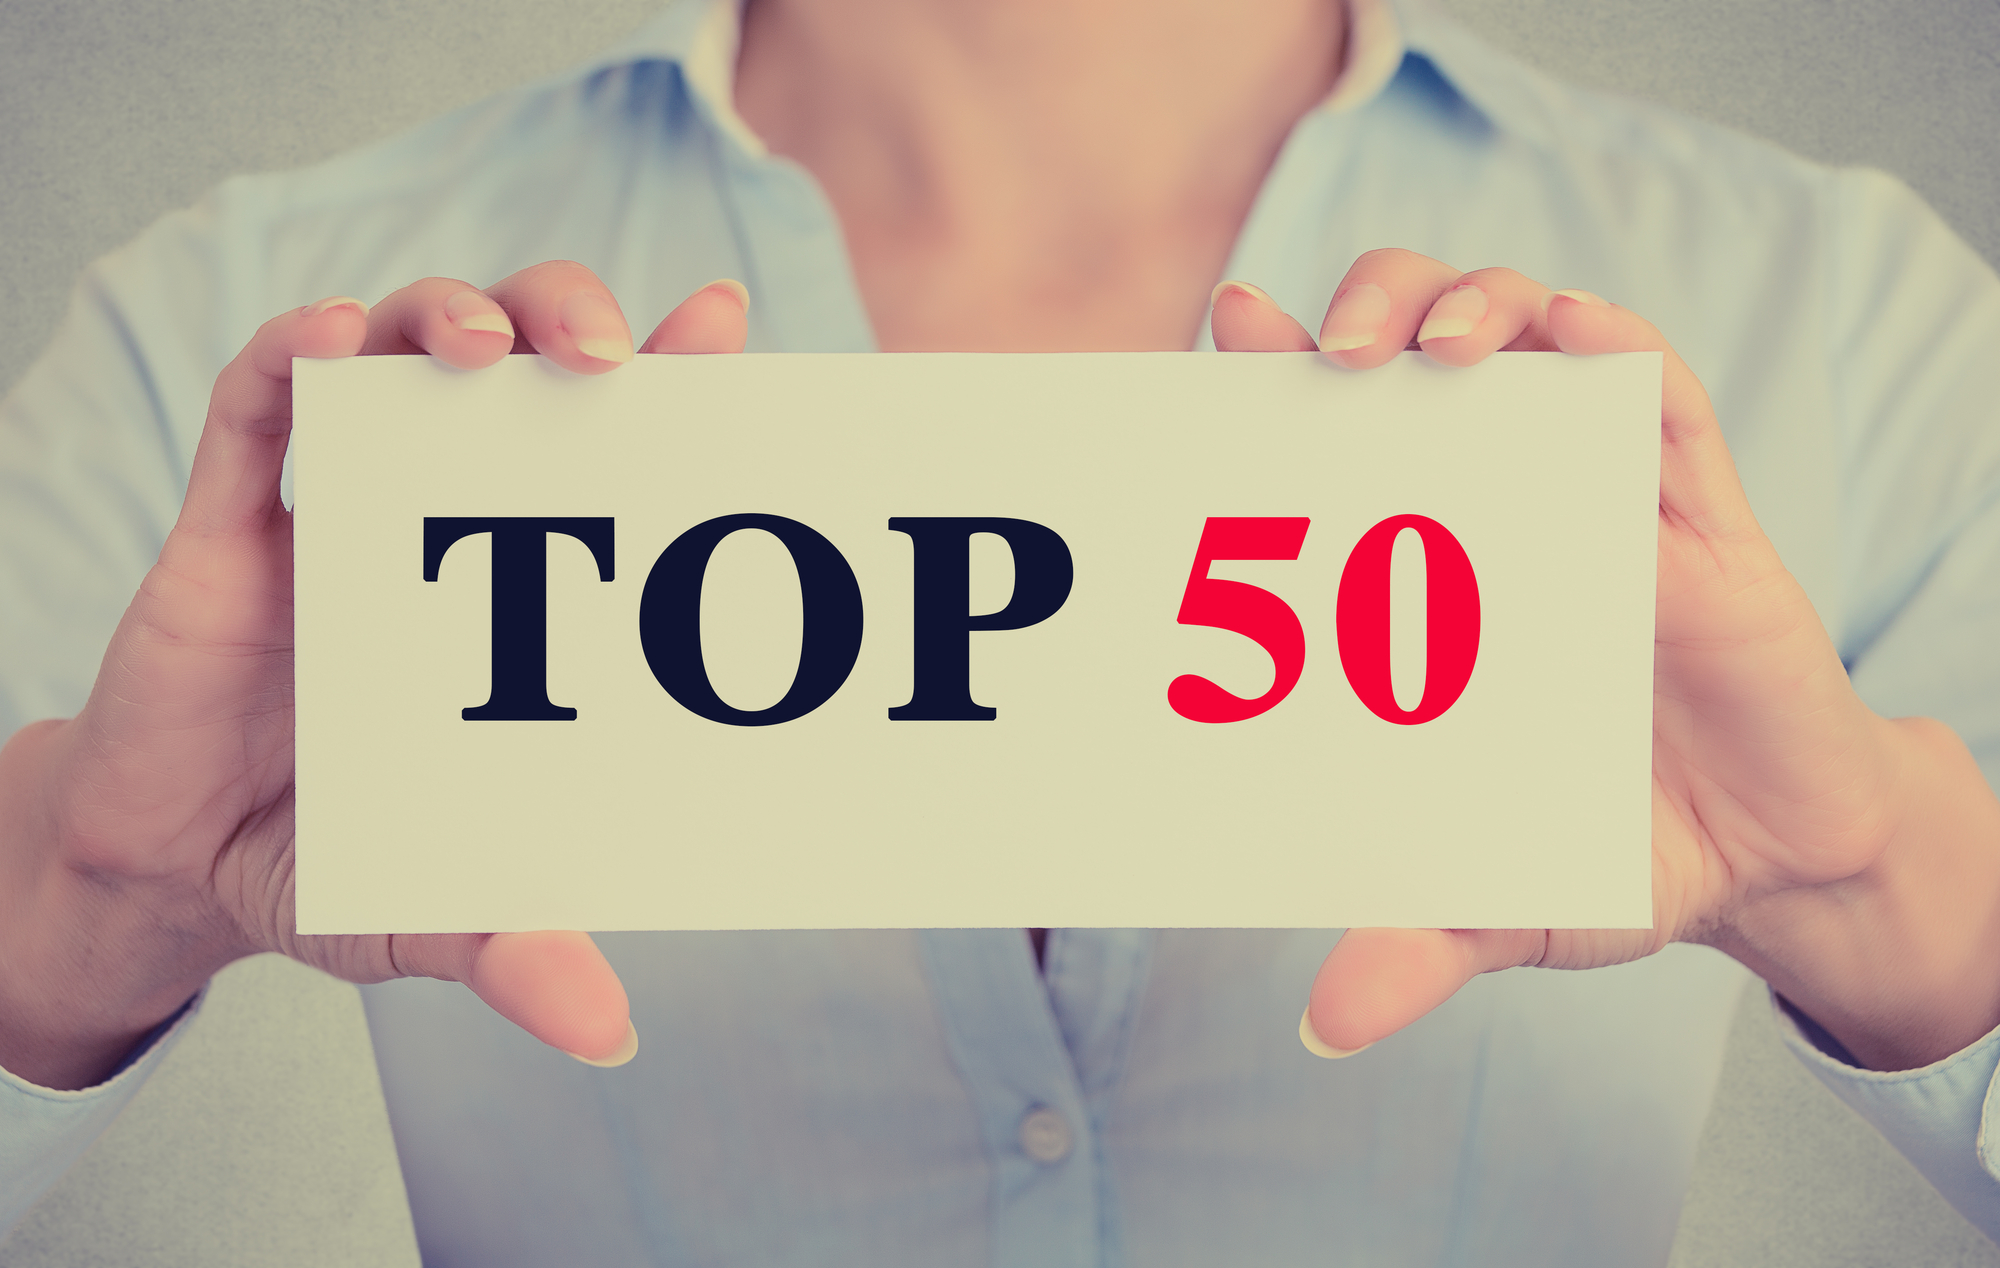 Top 50 On Note Card Held By Woman For 50 Largest Apartment Owners Blog